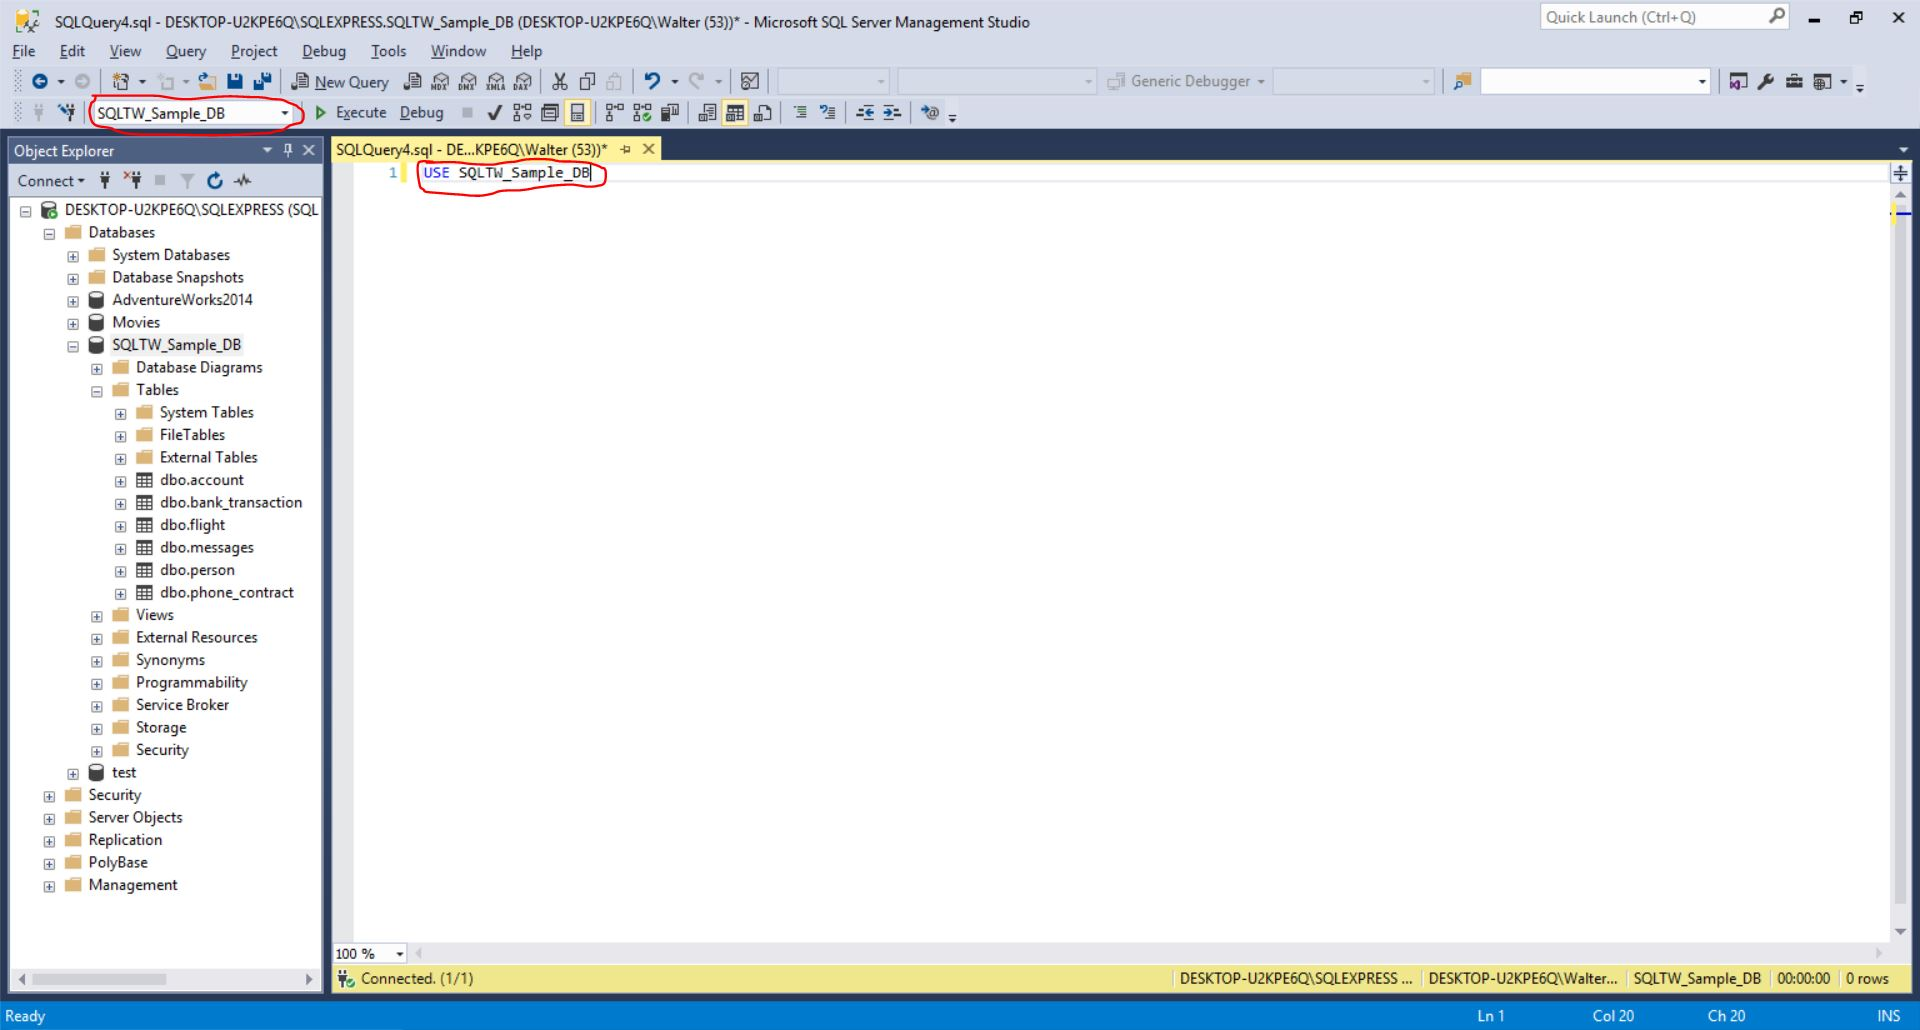 Associate your query with the SQLTW_Sample_DB